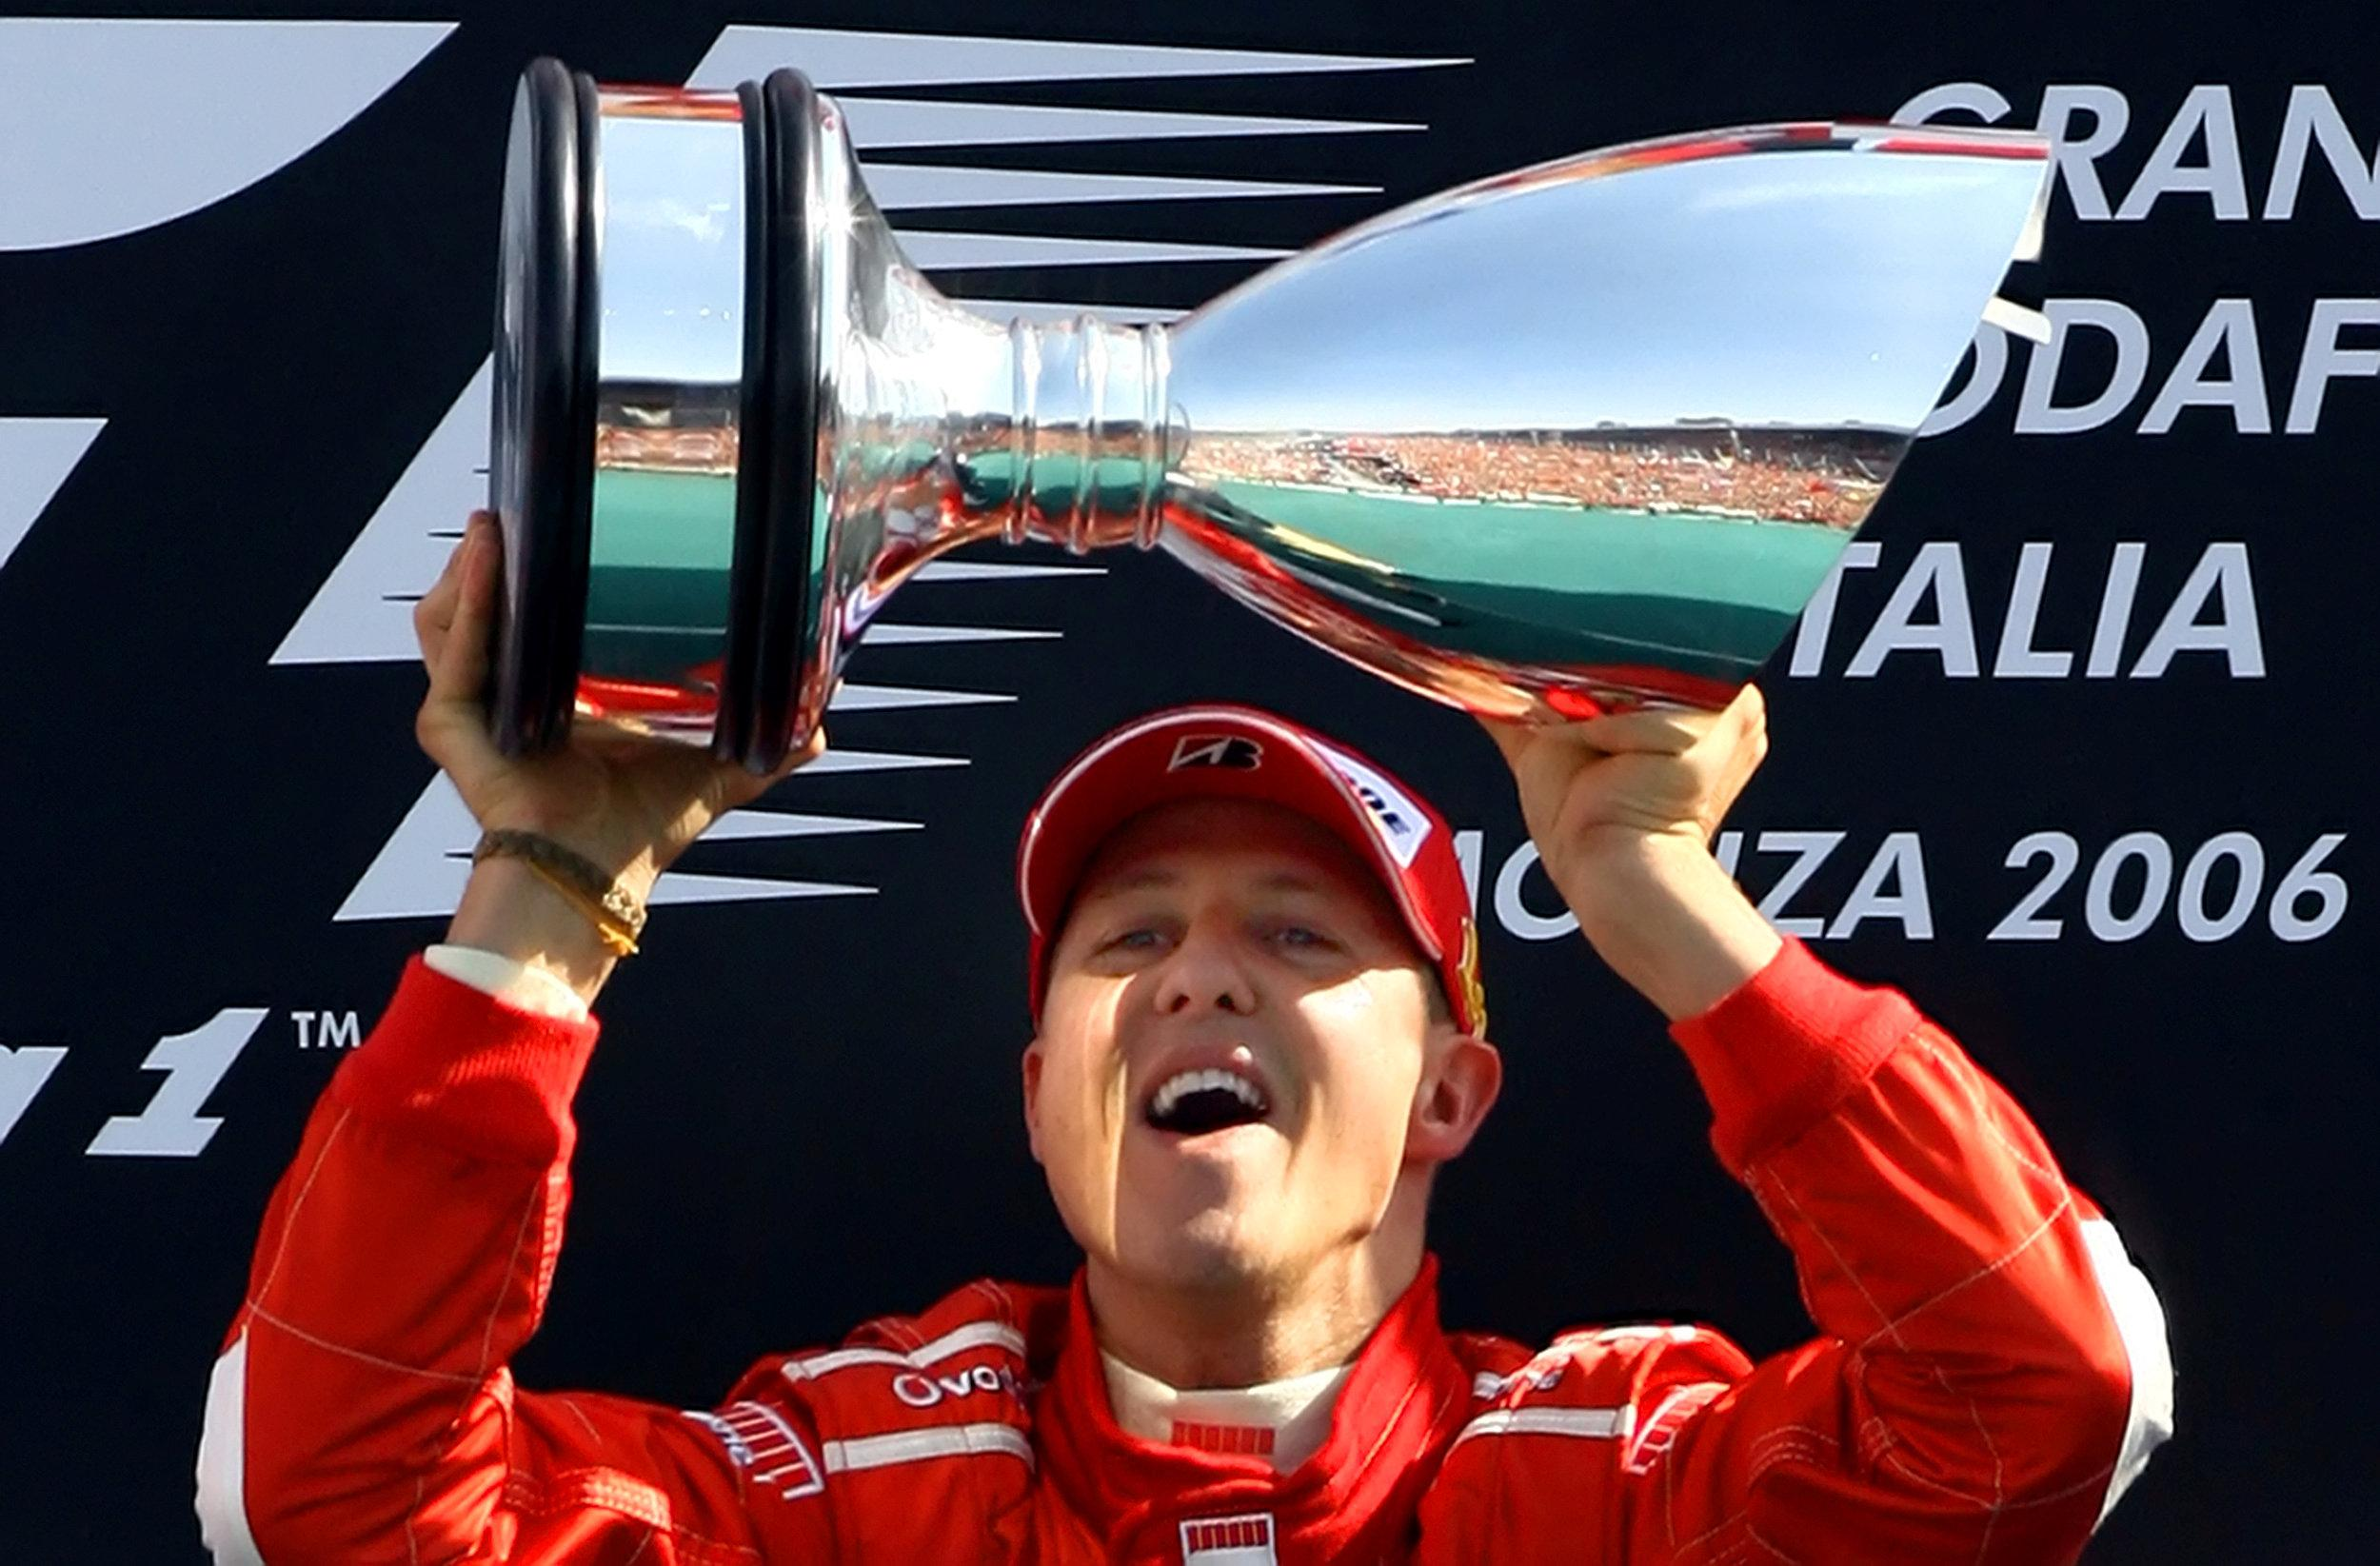 Schumacher won 91 races and won record-breaking seven F1 titles in his staggering career